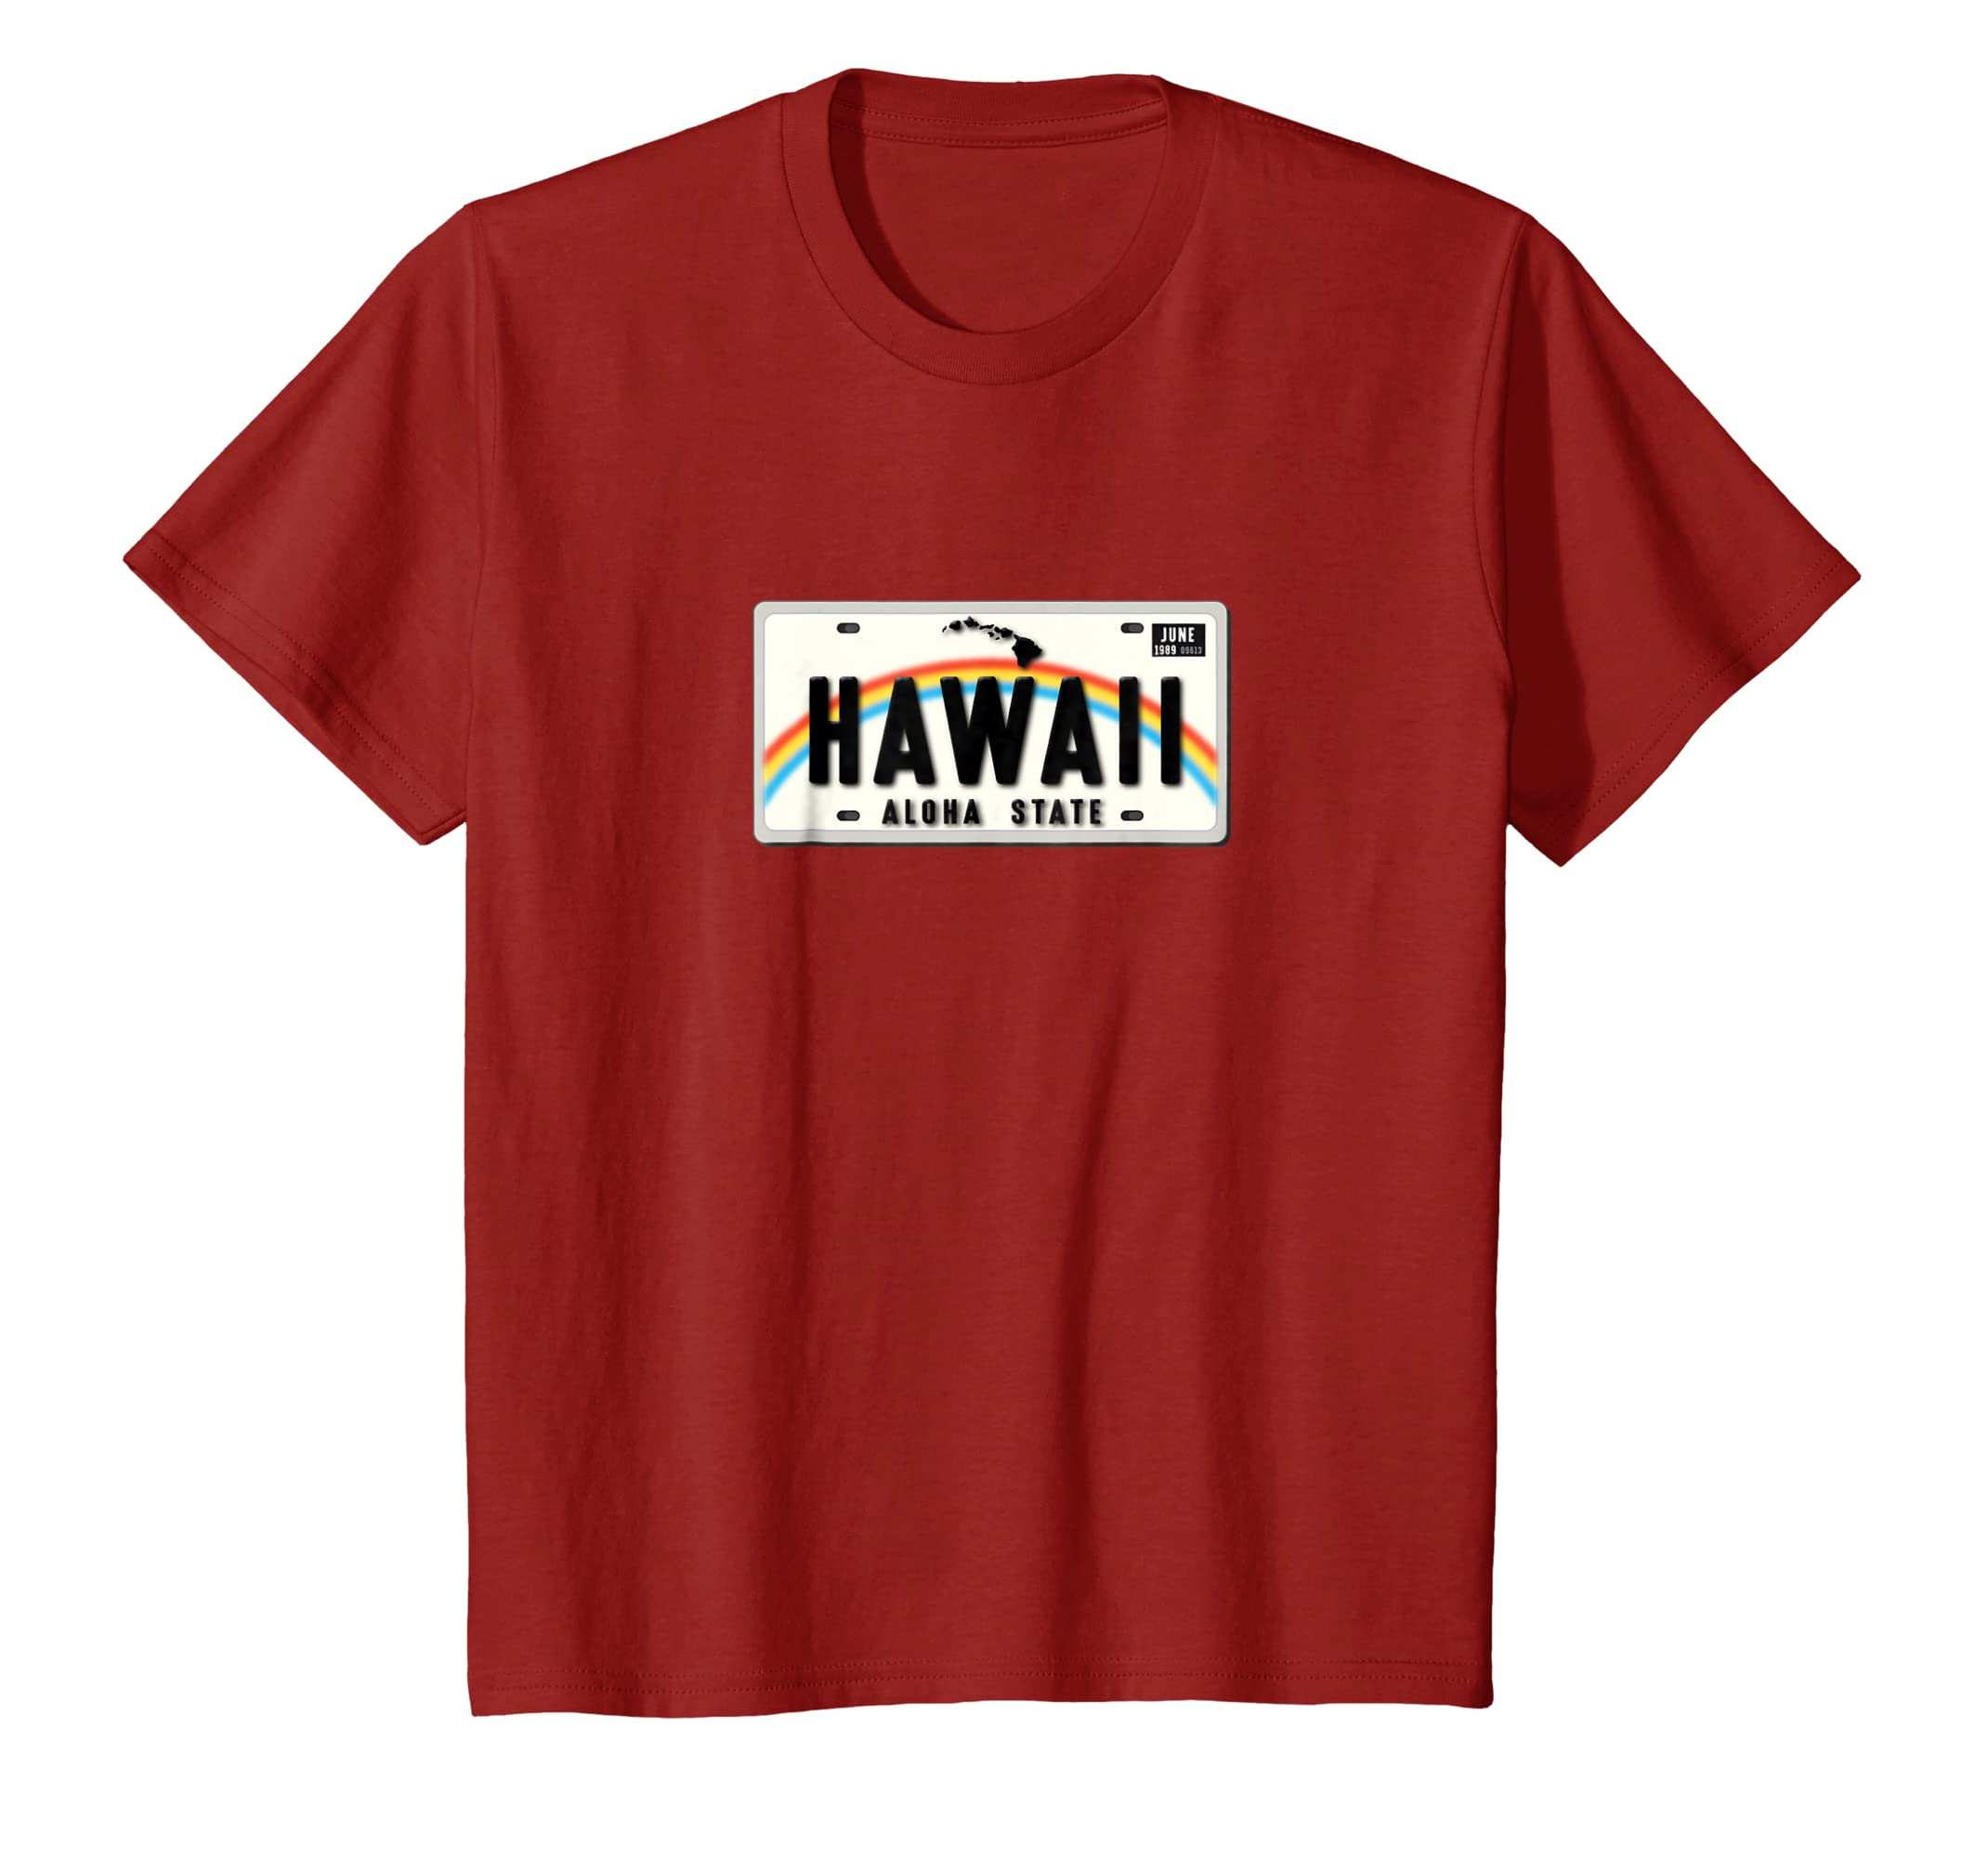 8ad2229993 Amazon.com: Aloha State Hawaii License Plate T-shirt: Clothing